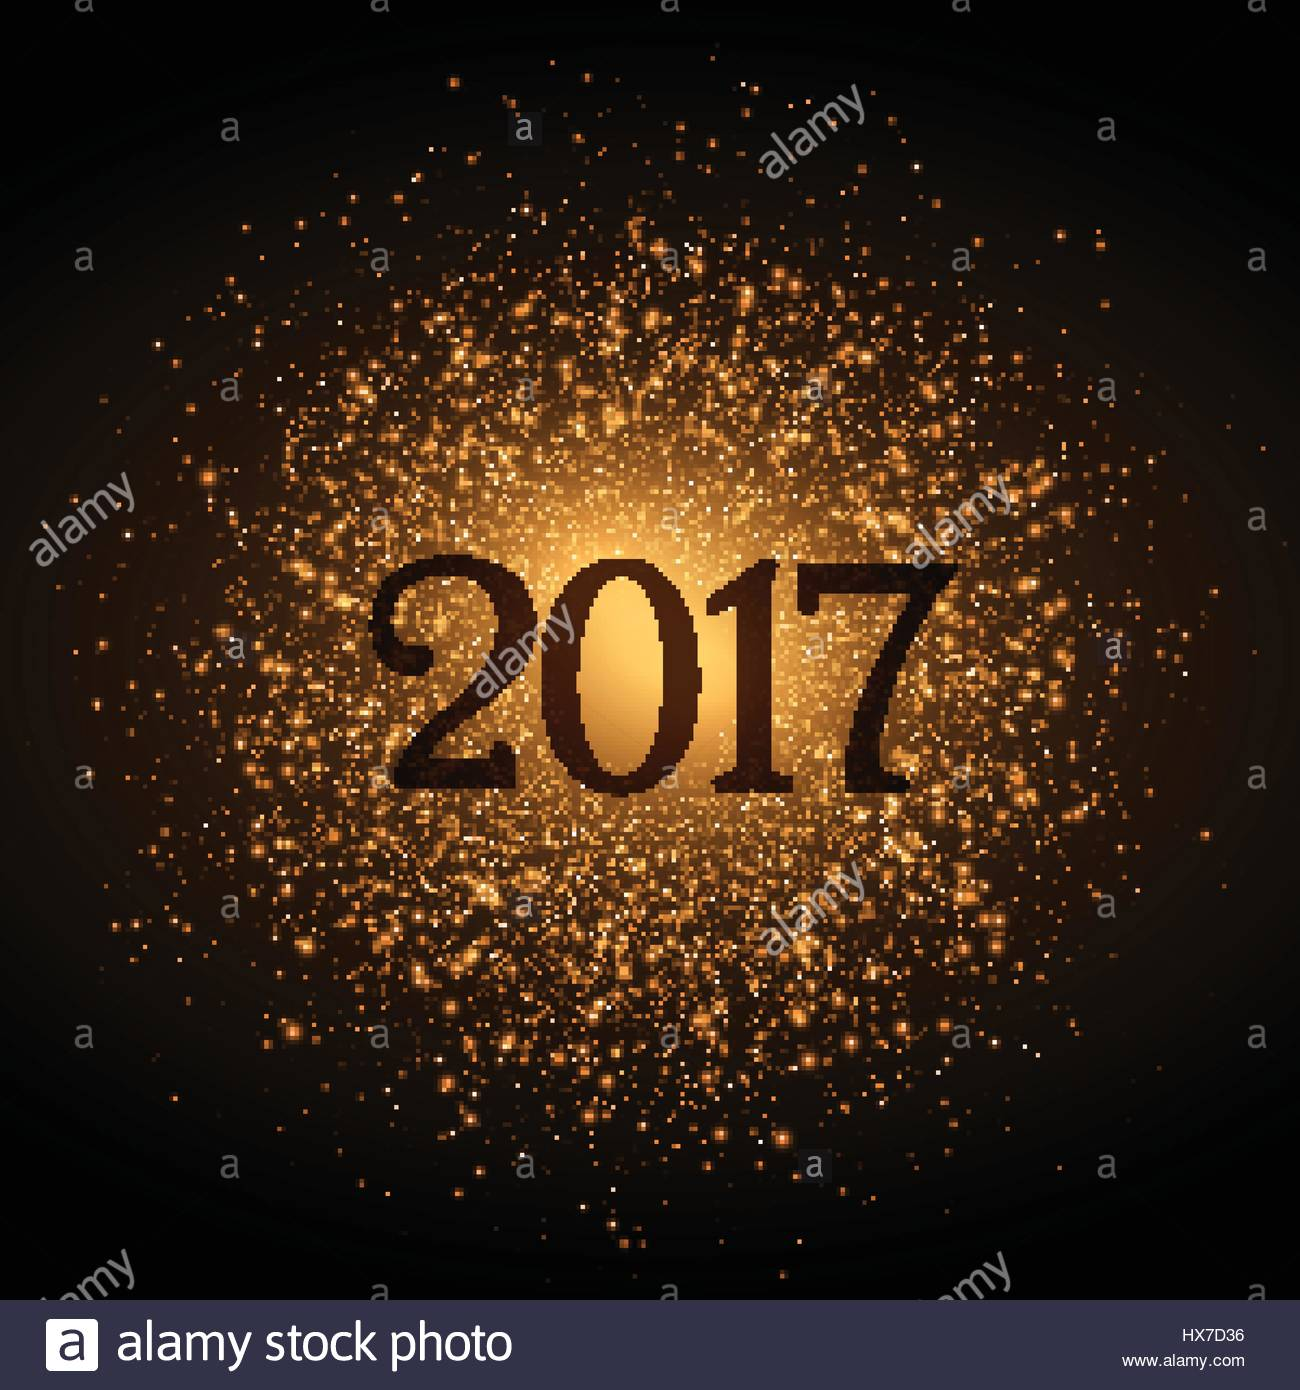 Golden Glitter Background For 2017 New Year Eve